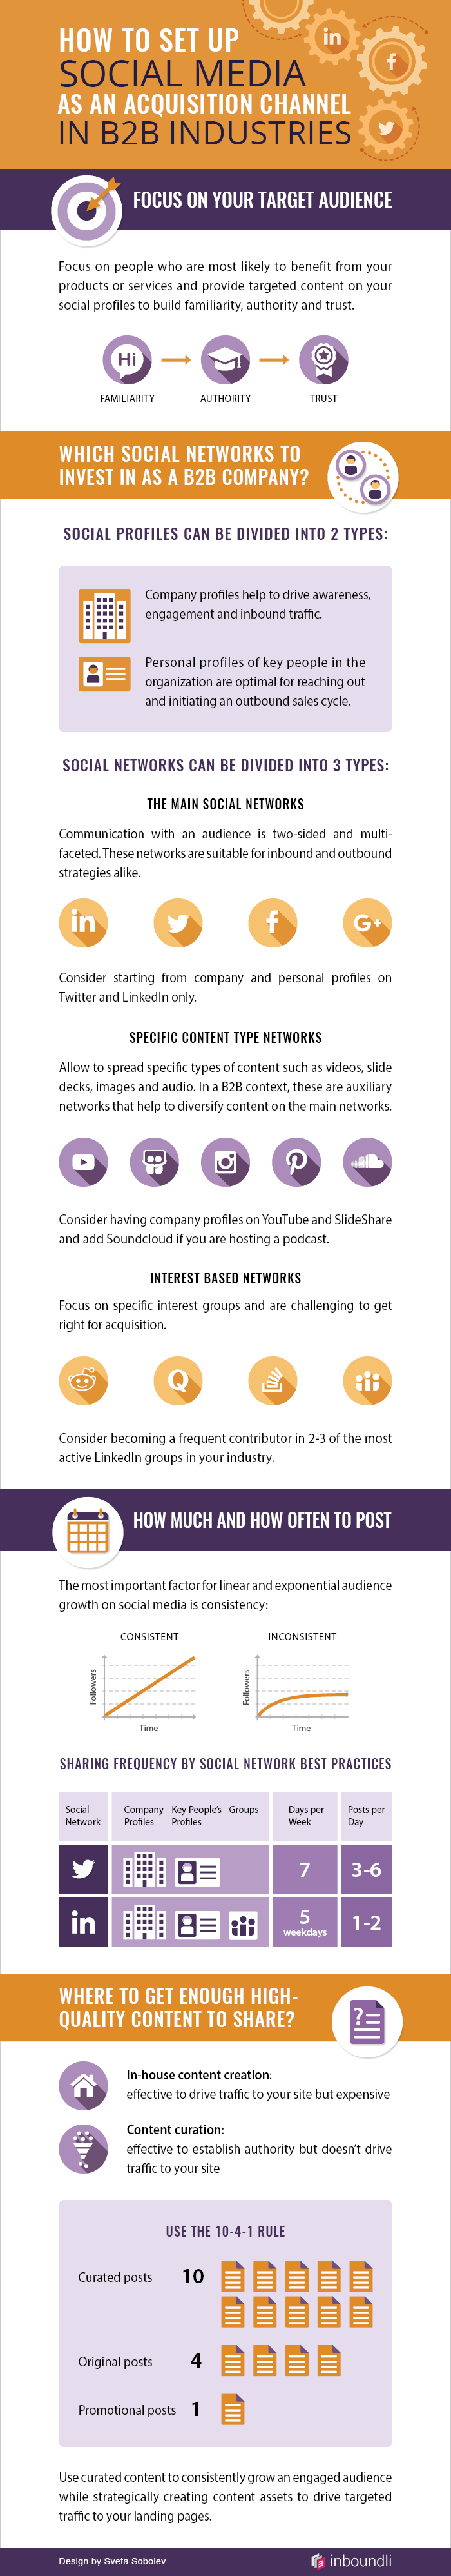 Infographic showing how to setup social media channels as a B2B company